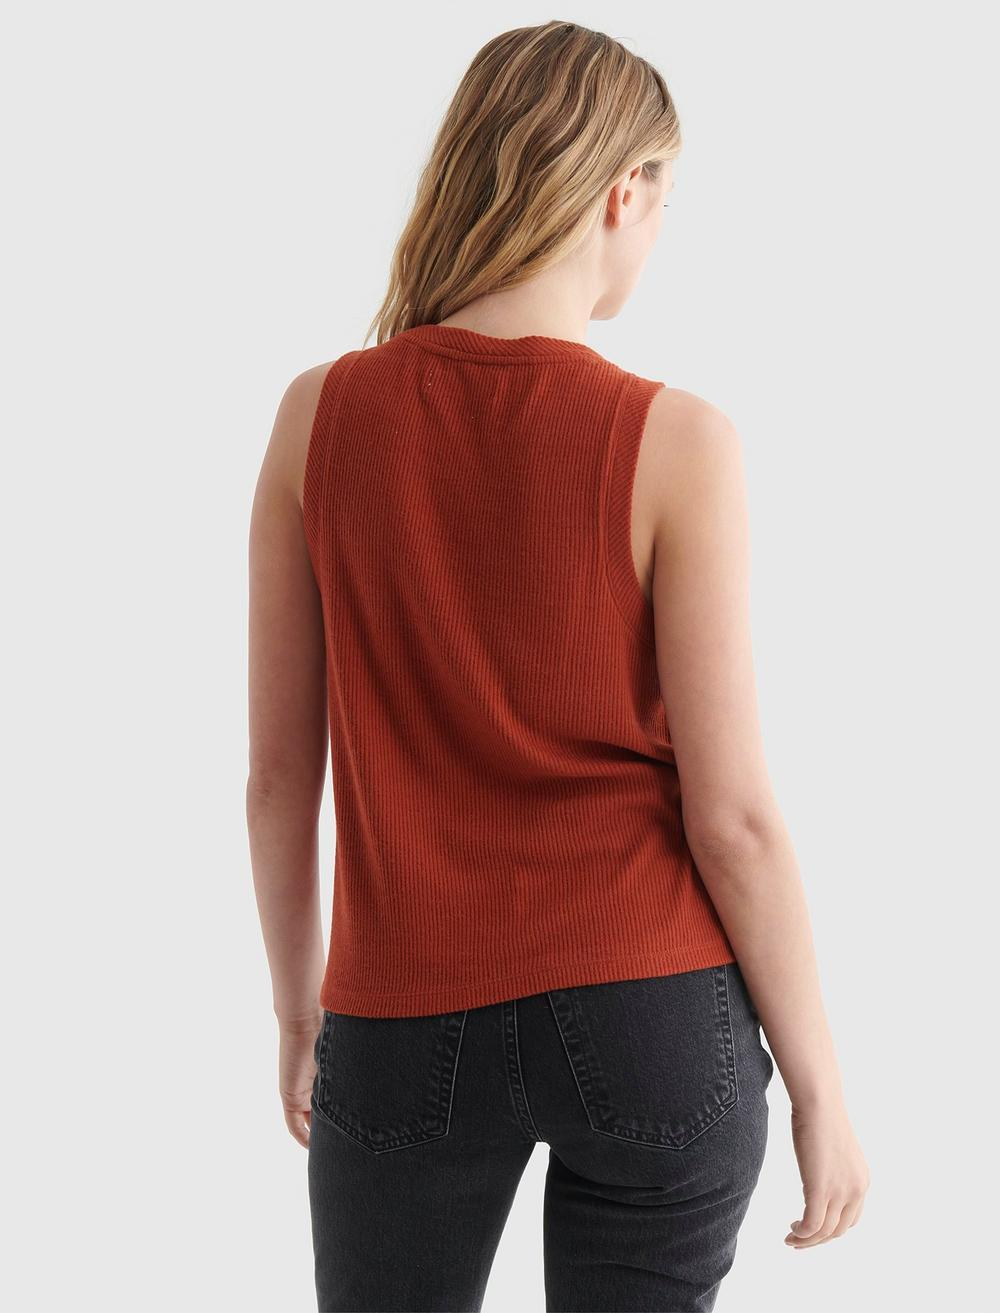 CLOUD JERSEY RELAXED TANK, image 5